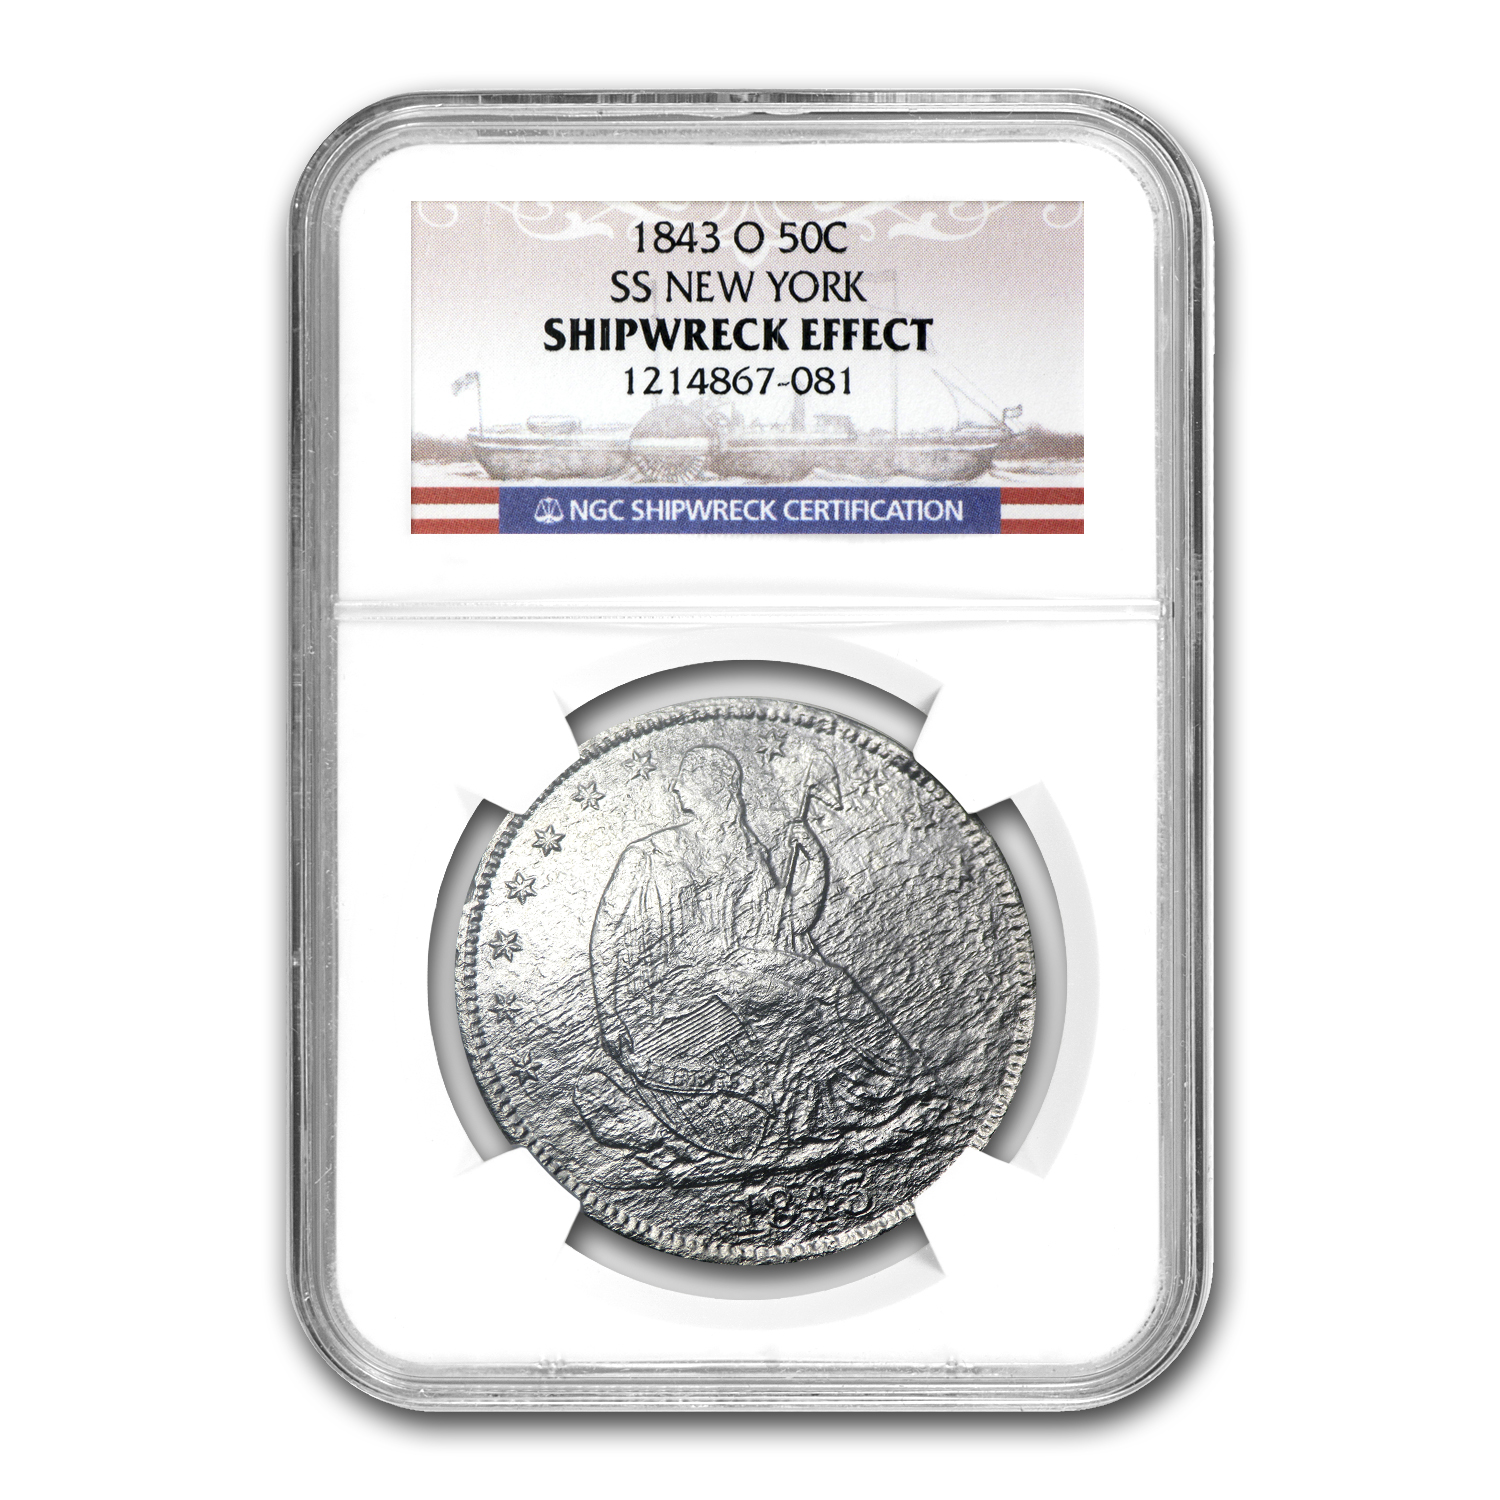 1843-O Seated Half Dollar - SS New York - NGC - Shipwreck Effect